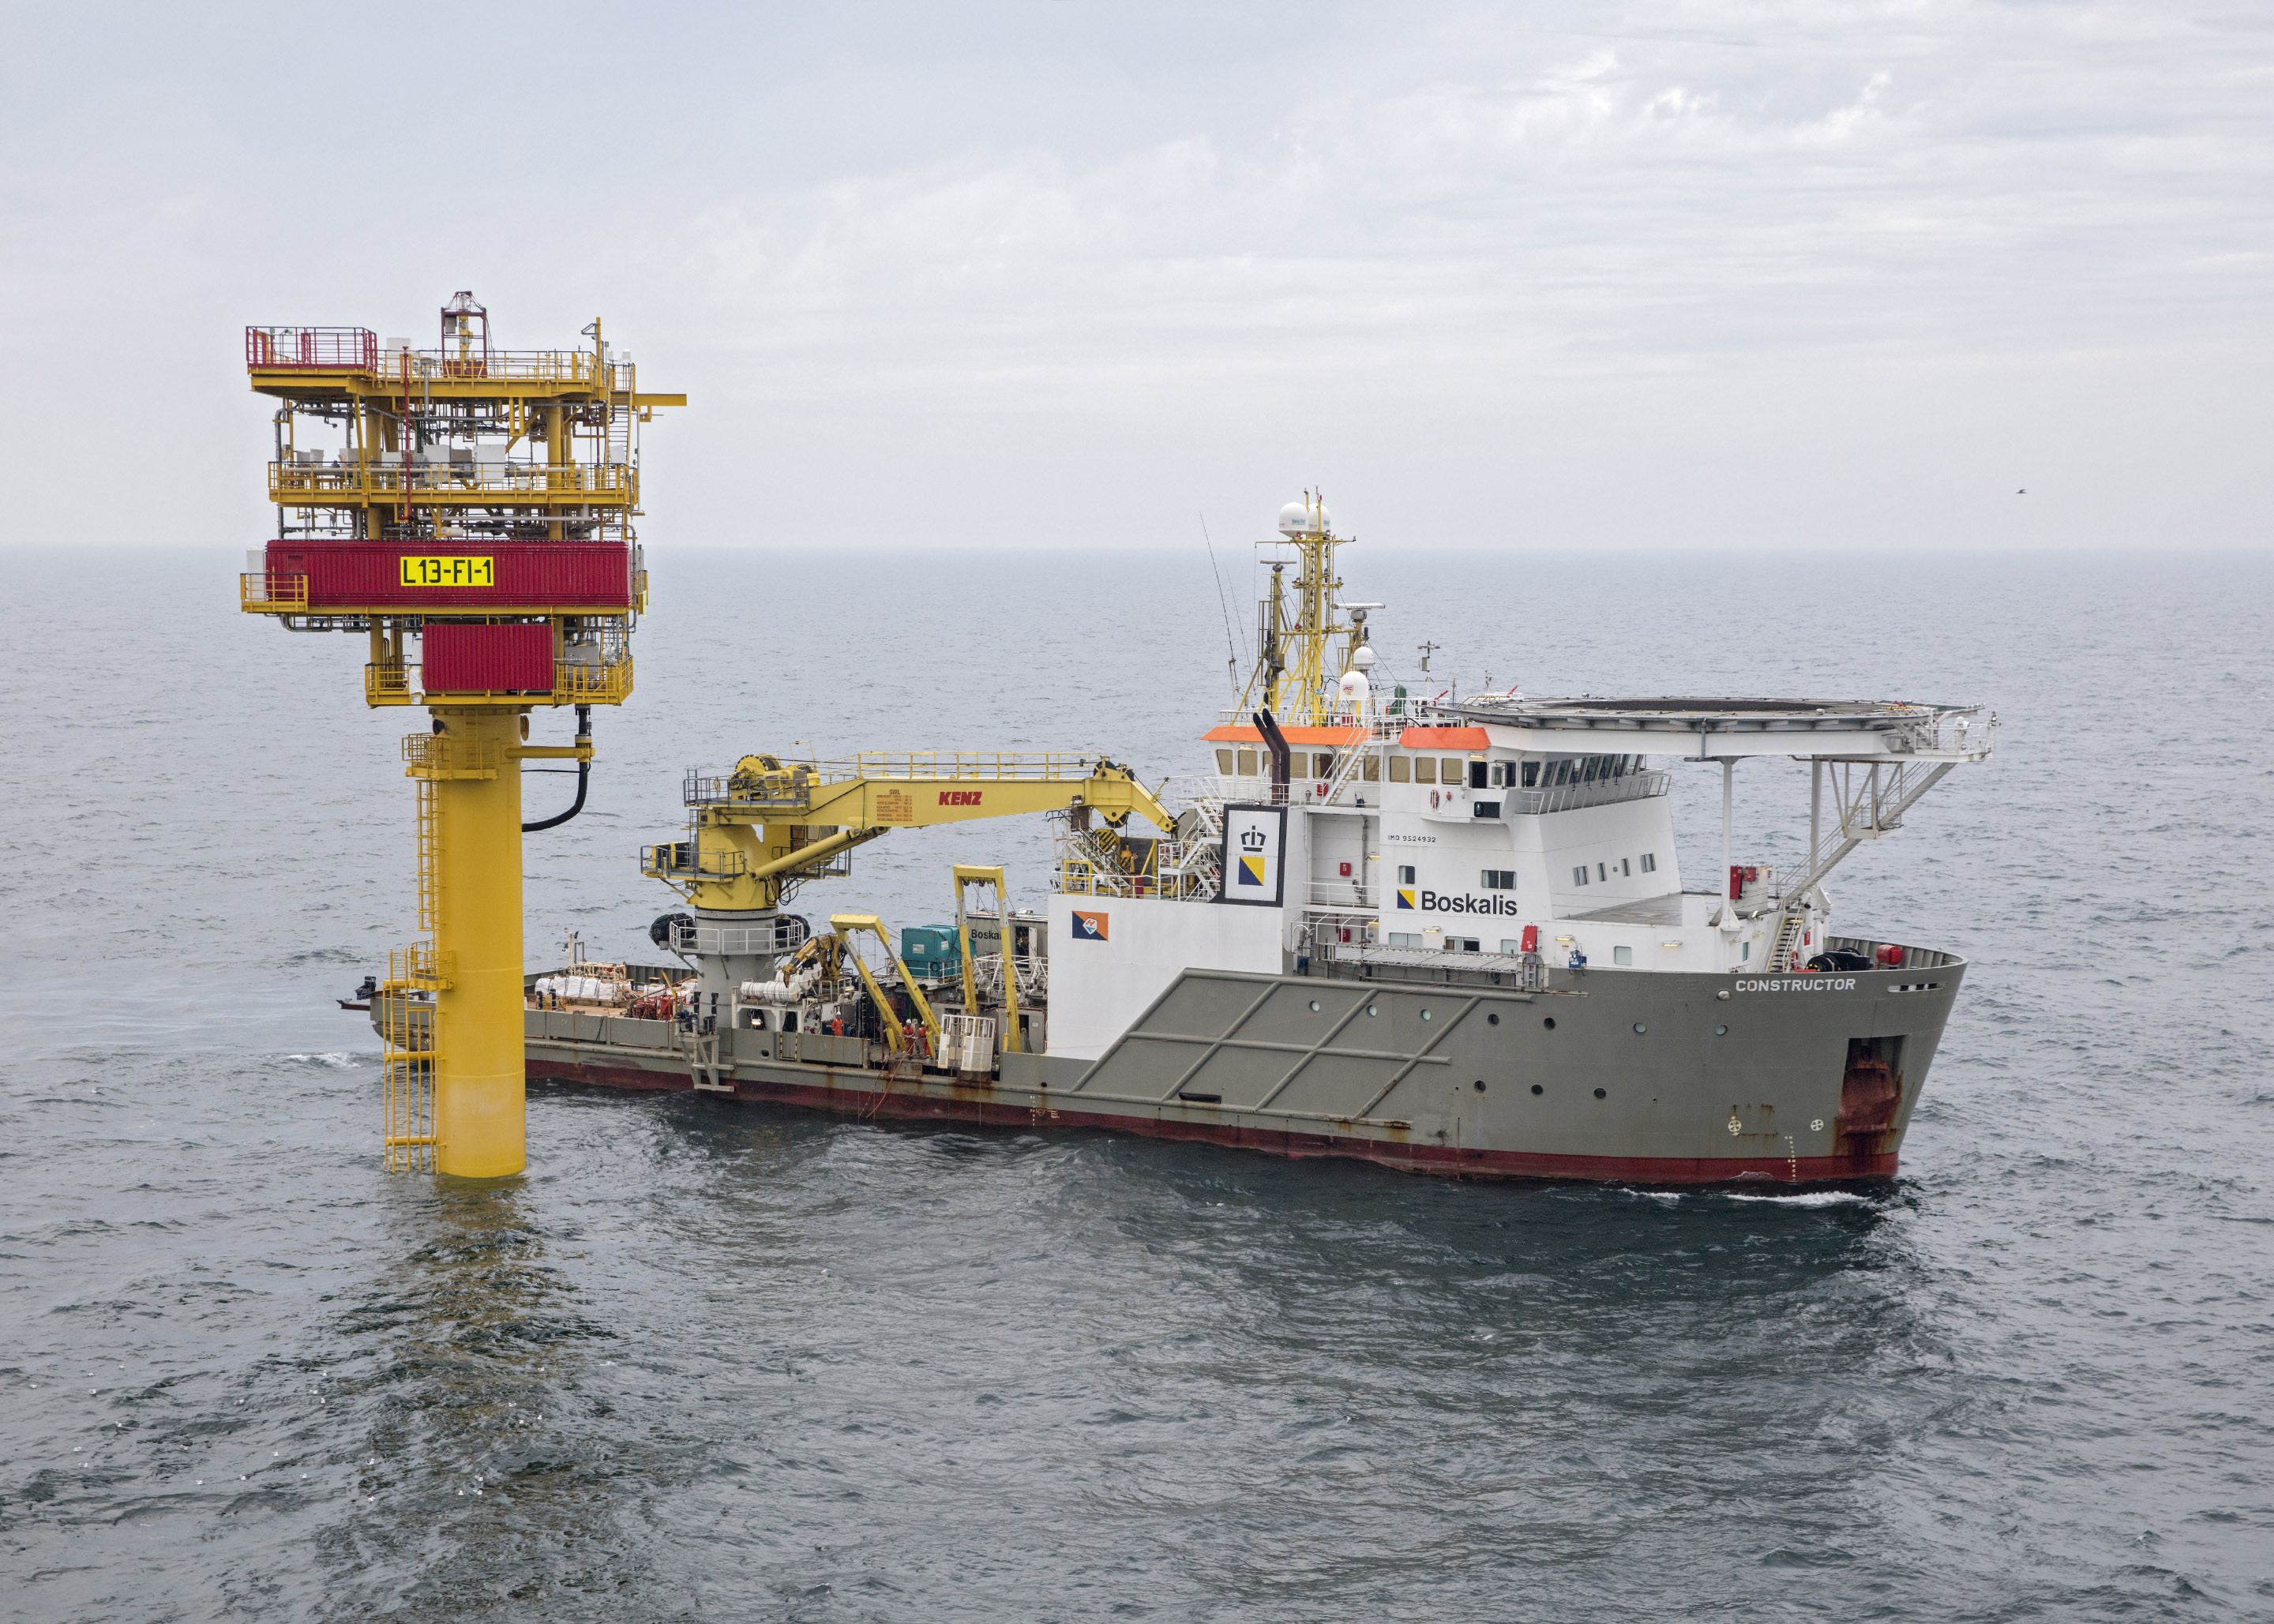 Boskalis DSV Constructor executing subsea installation works with divers at a platform in the North Sea